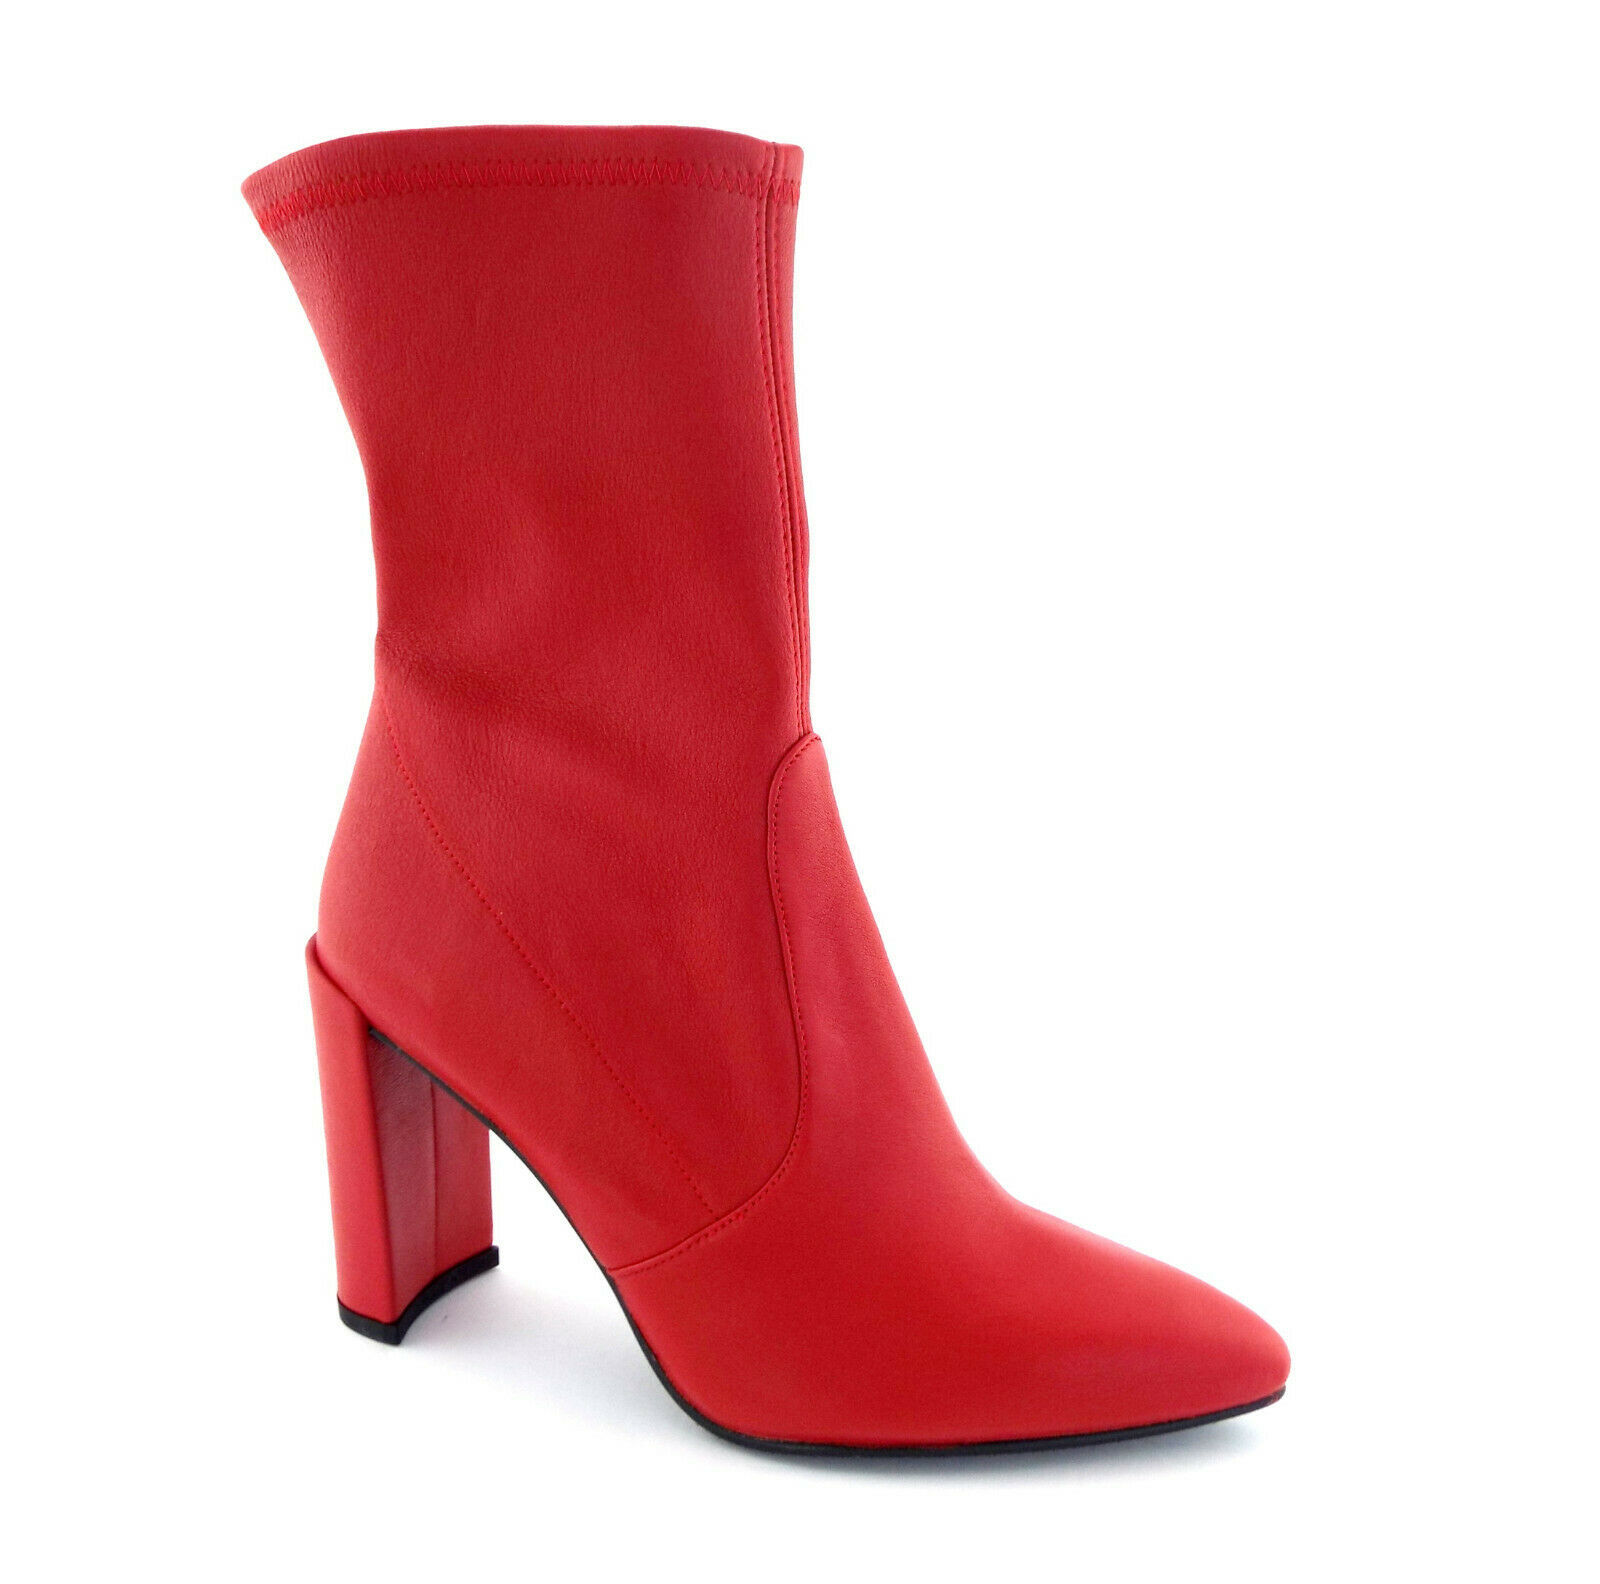 6a715bc1de8 Stuart Weitzman Boot: 1 customer review and 153 listings